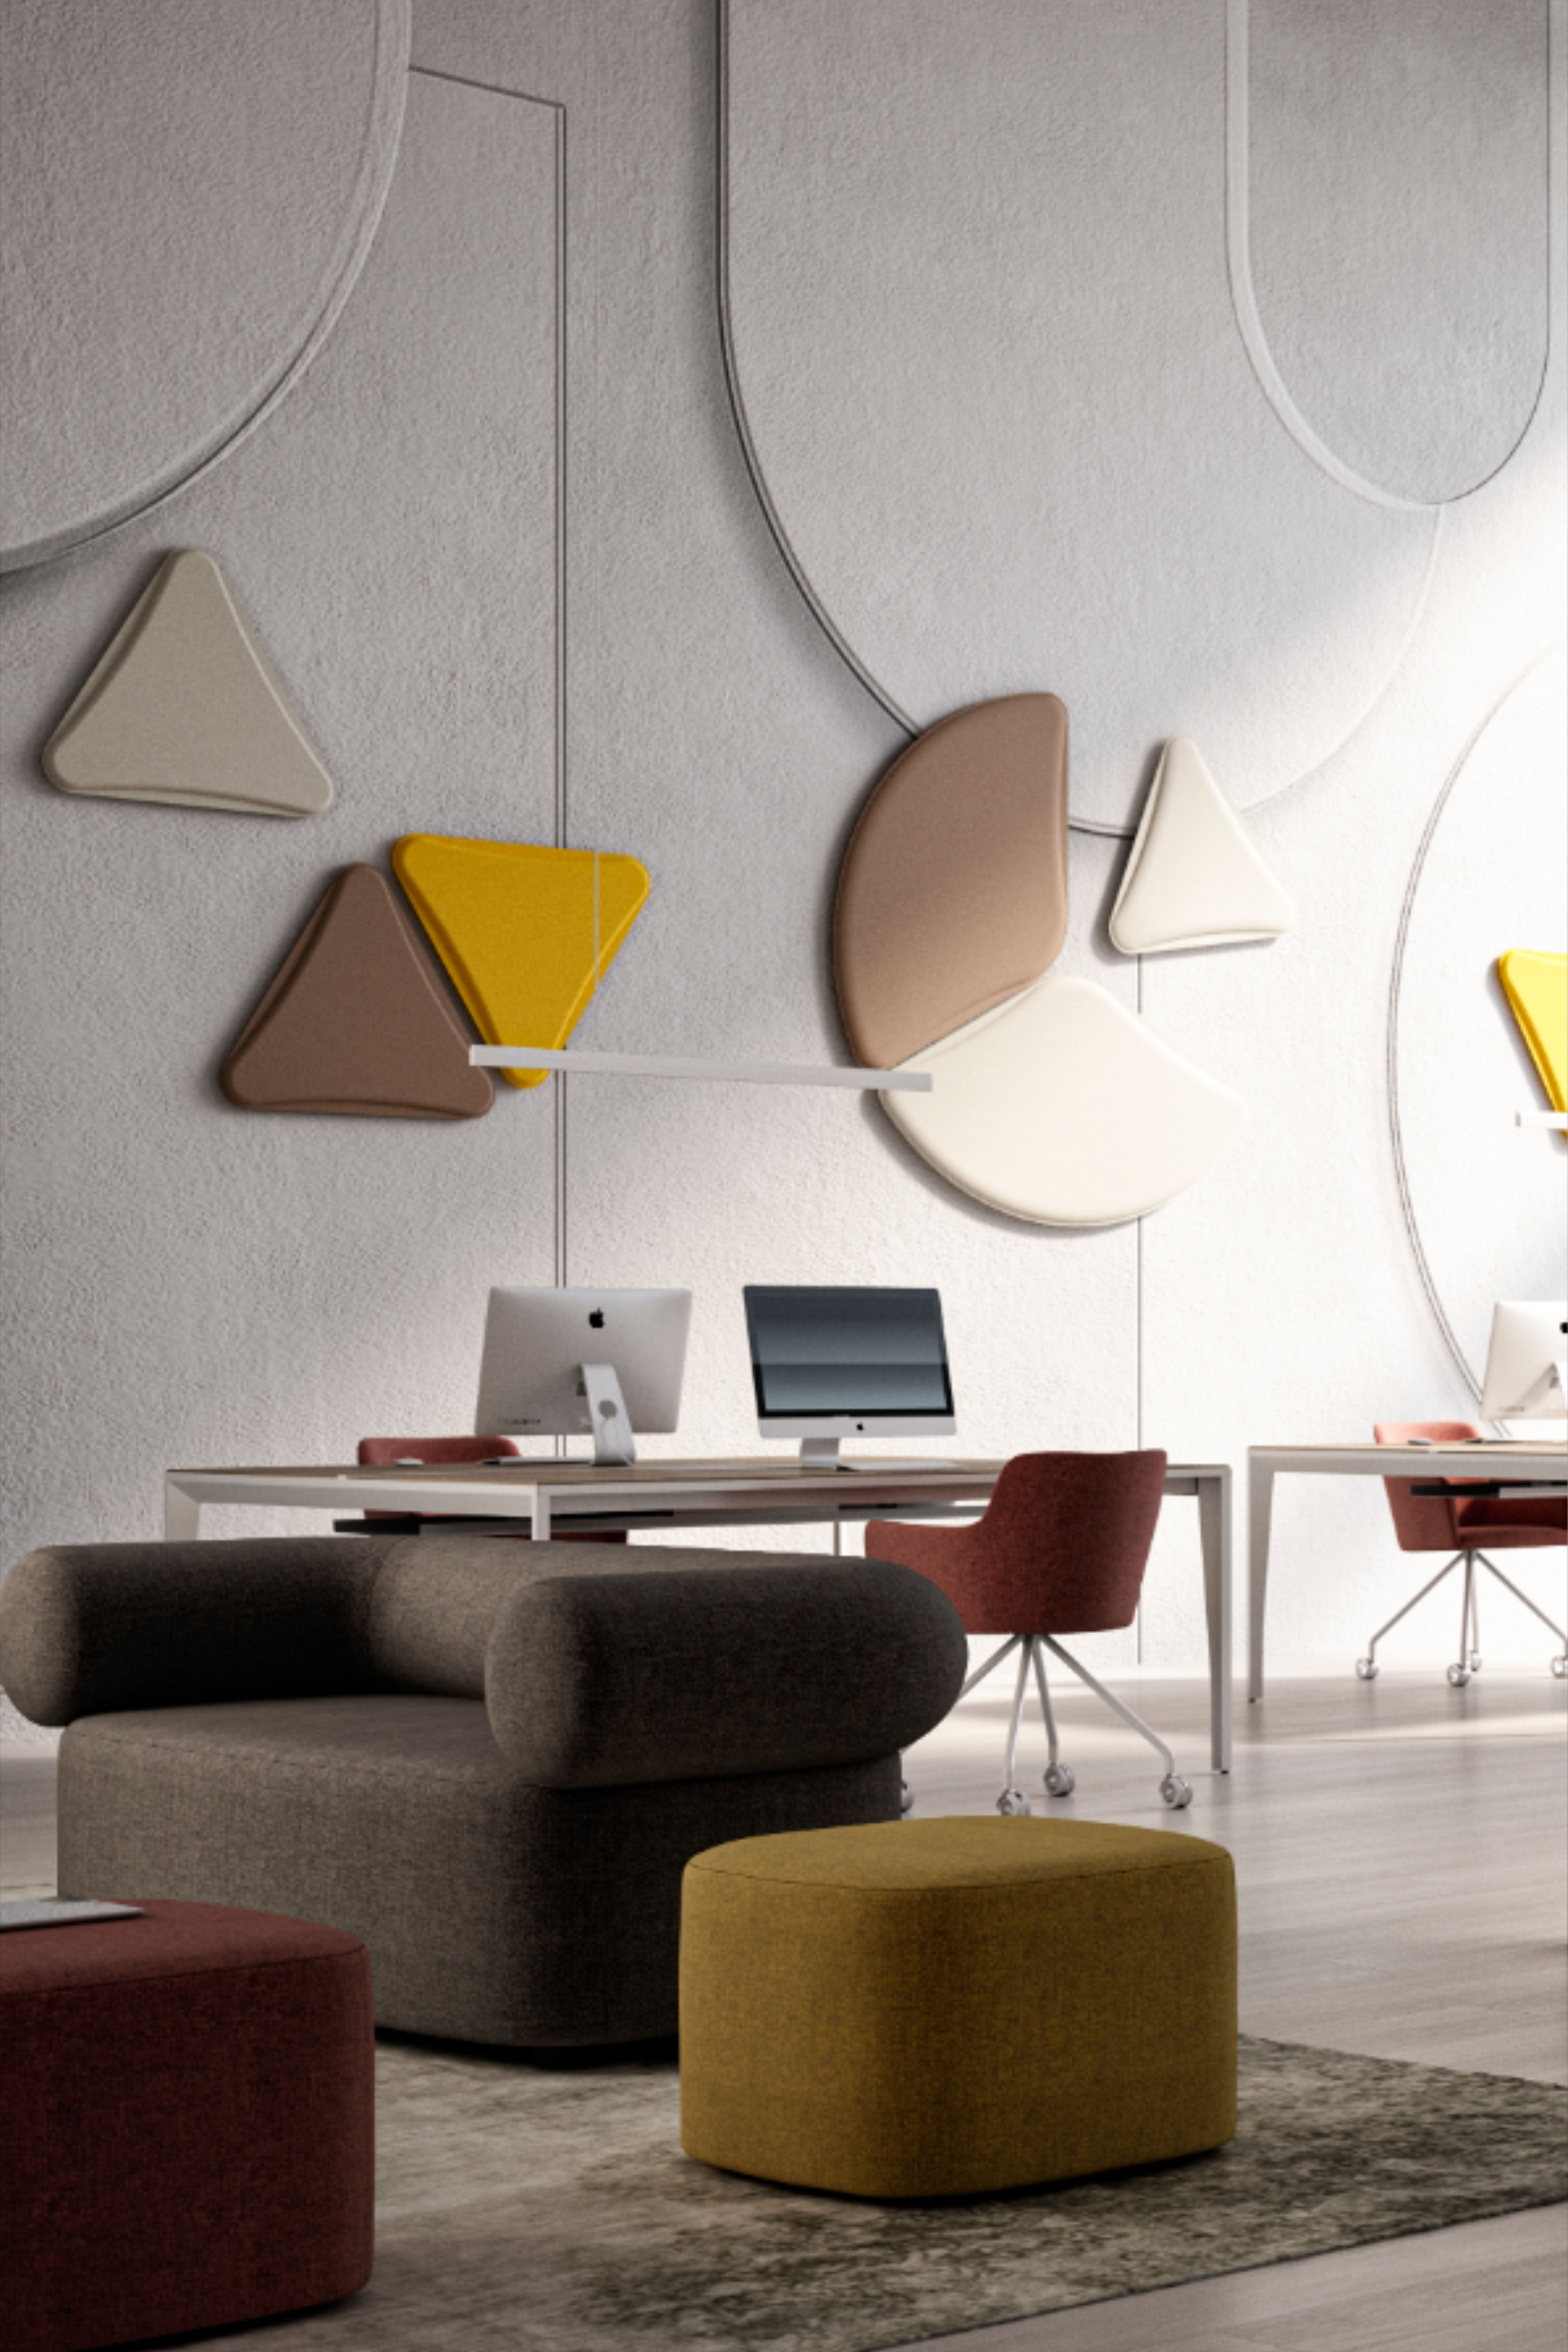 LightSound is a system that has been created to meet the acoustic and visual comfort needs. Here our Petals and Cloak soundproofing panels. #lightsound #quadrifogliogroup #acoustic #office #design #workplace #furniture #madeinitaly #comfort #acoustic #officeinspiration #acousticpanels #furniture #style #coworking #architecture #interiordesign #officeliving #soundproof #conceptdesign #openspace #soundproofing #designlovers #officelayout #comfortdesign #wellbeing #contractdesign #workspaces